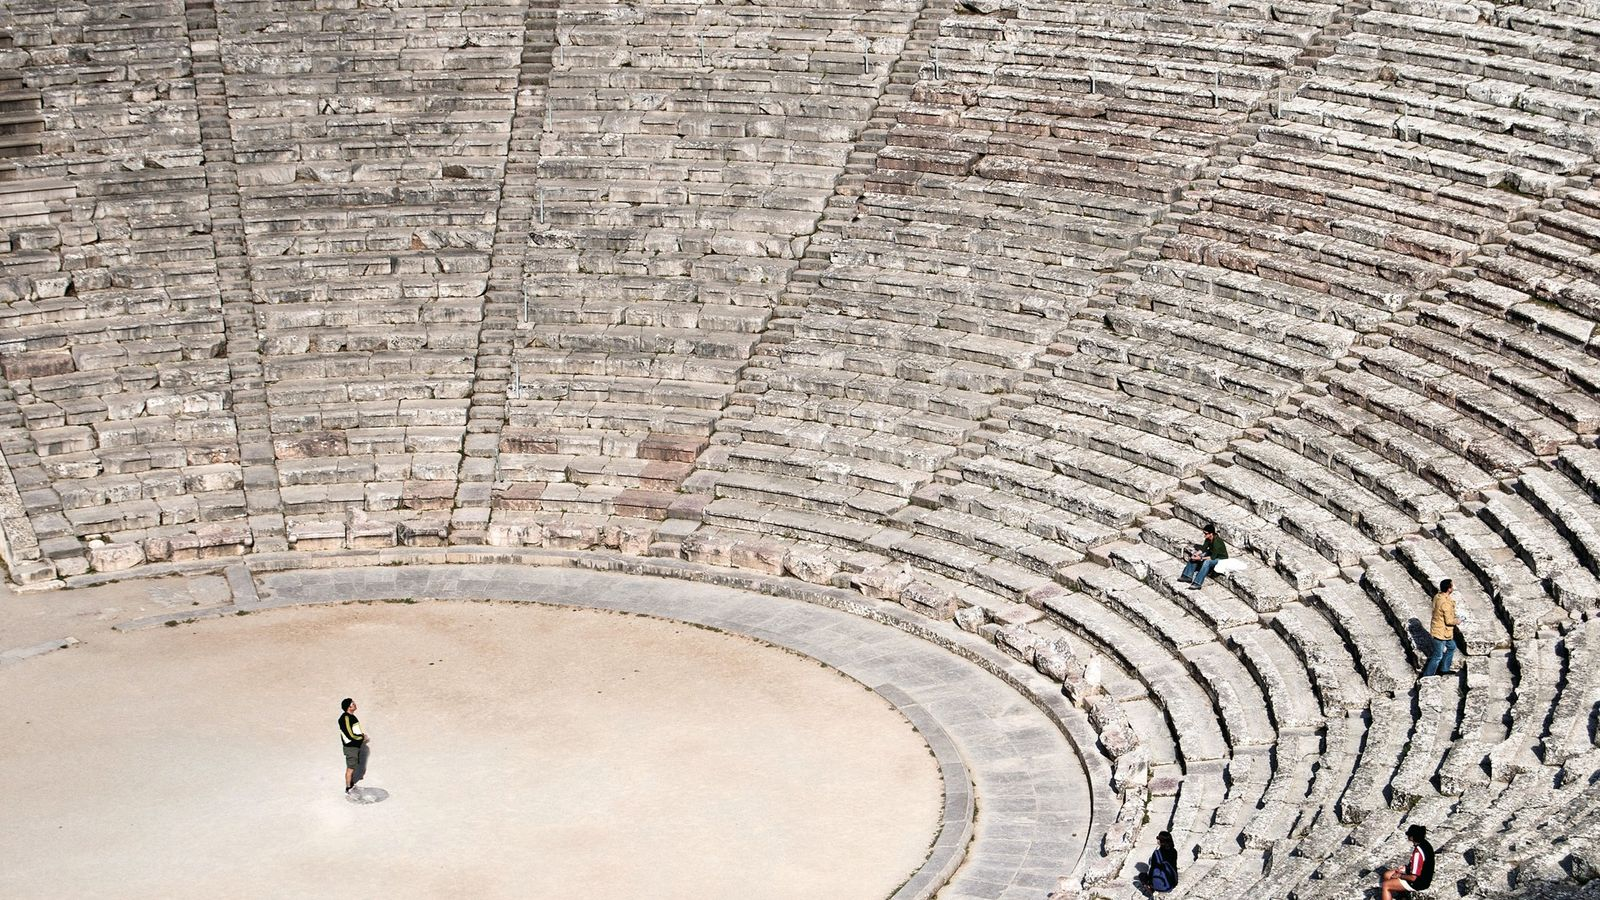 Epidaurus, an ancient Greek theatre with exceptional acoustics, was built in the fourth century B.C.